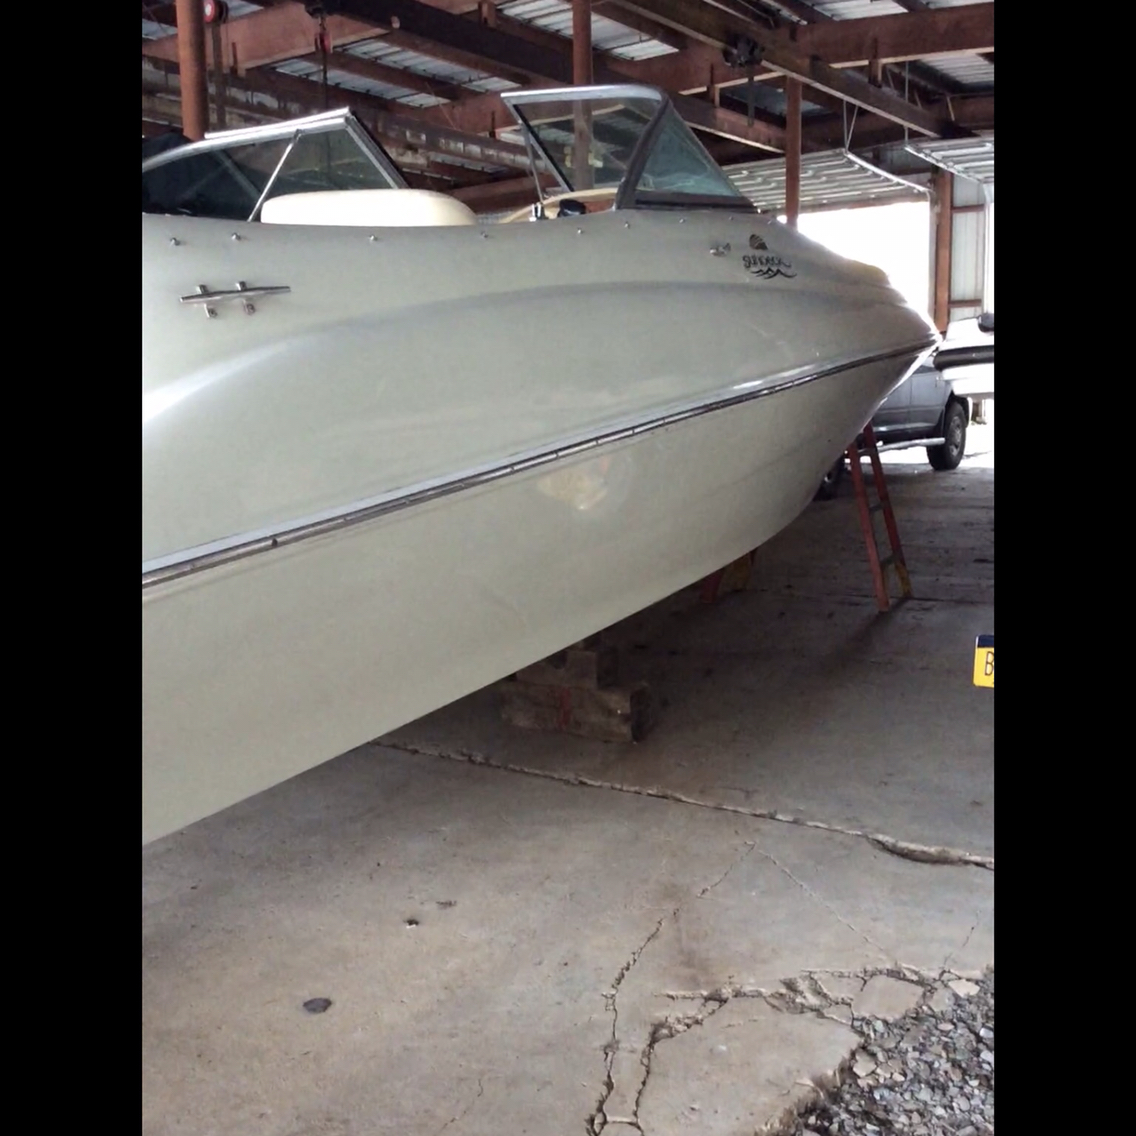 USED 2000 Sea Ray 210 Sundeck - Hutchinson's Boat Works